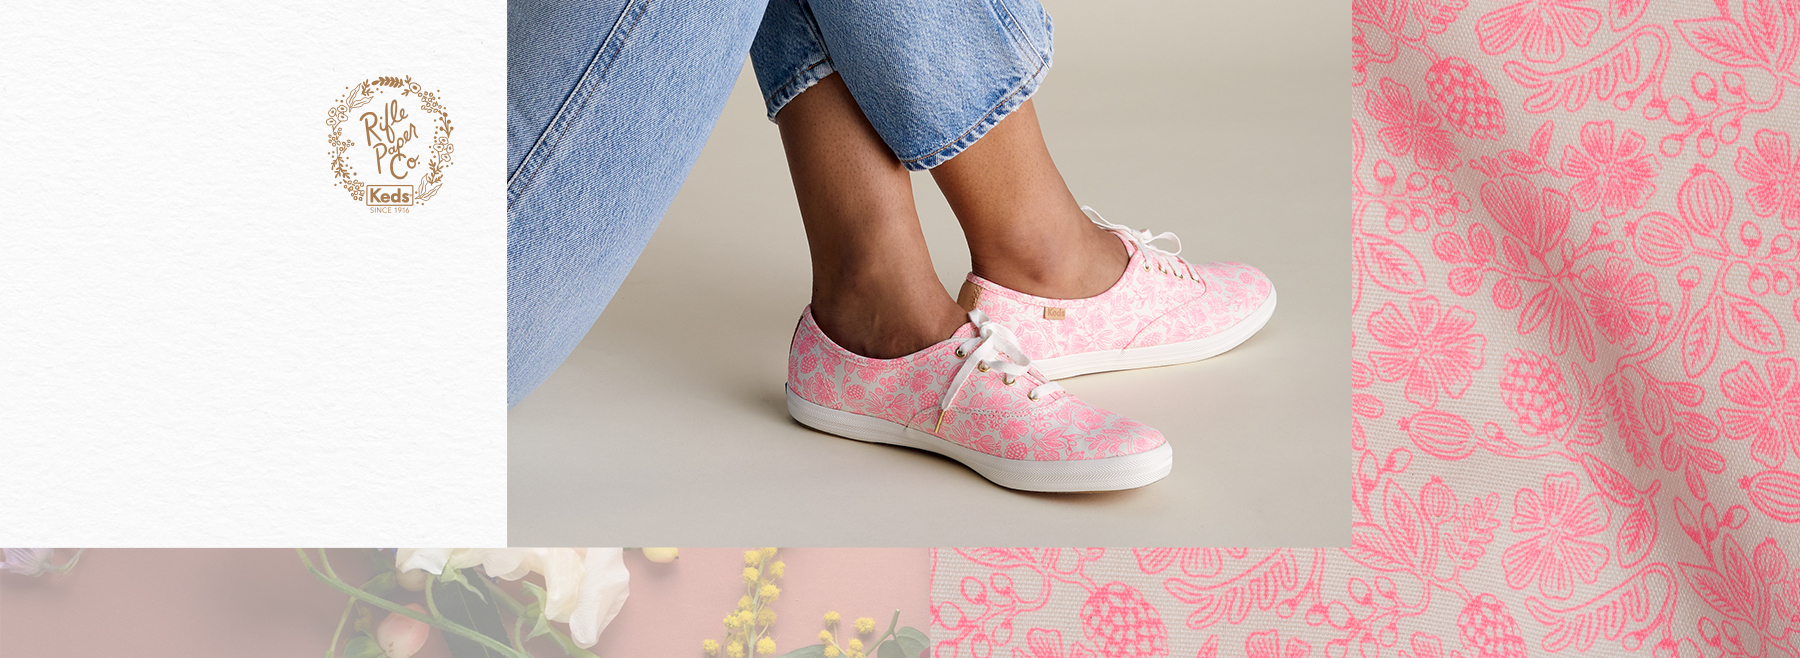 Keds and The Rifle Paper Co